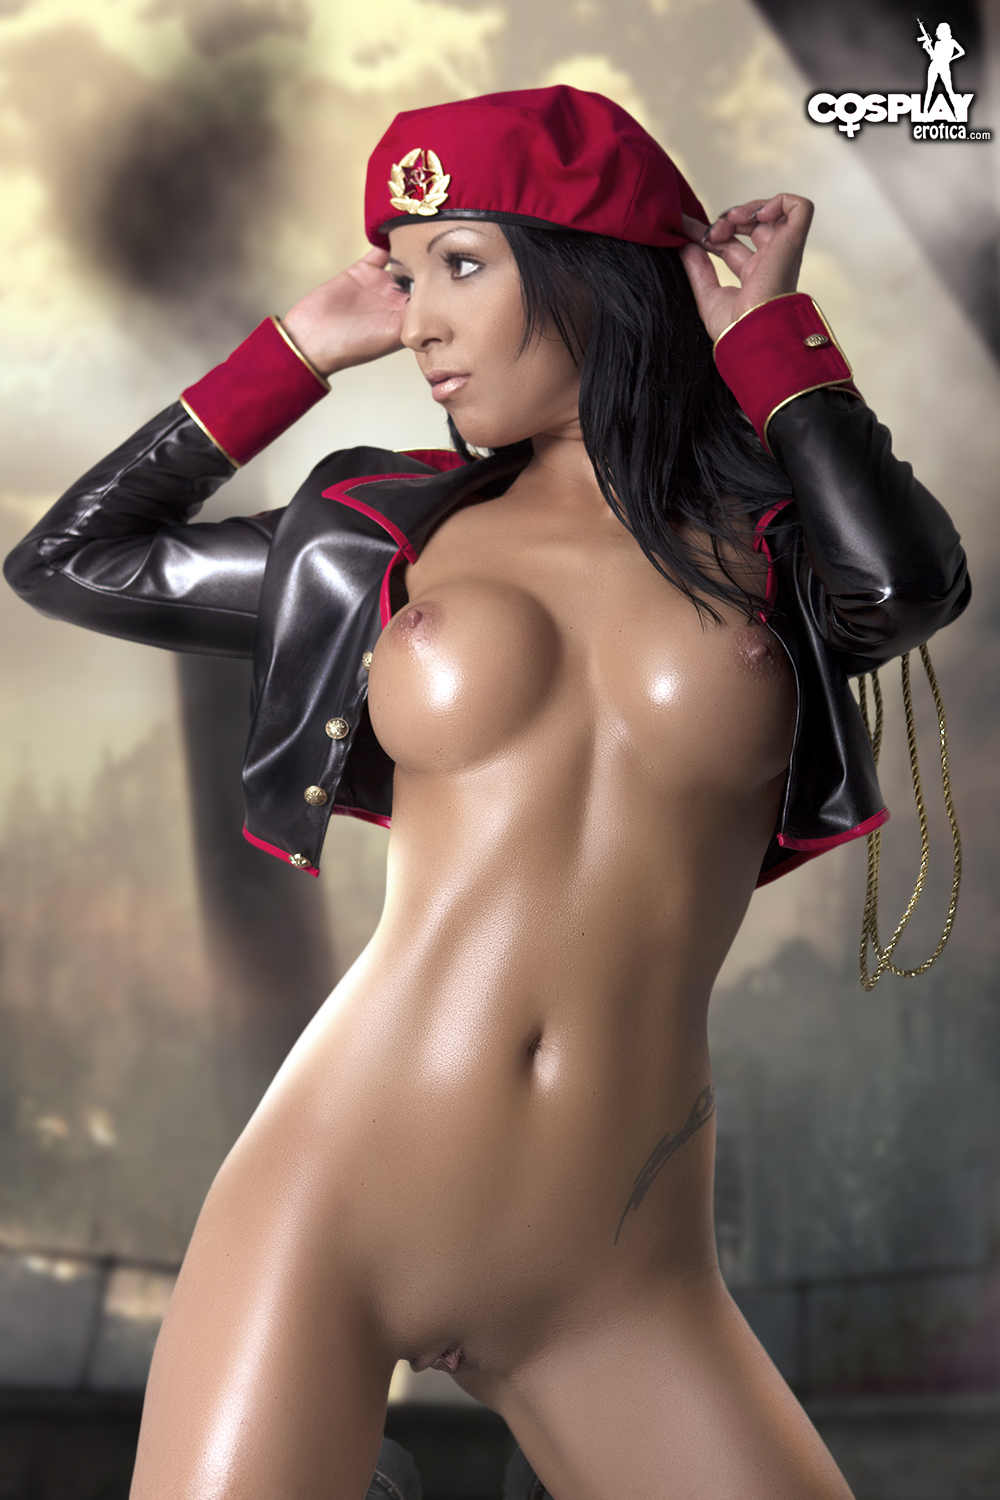 Hot Sexy Cosplay Girl Nude